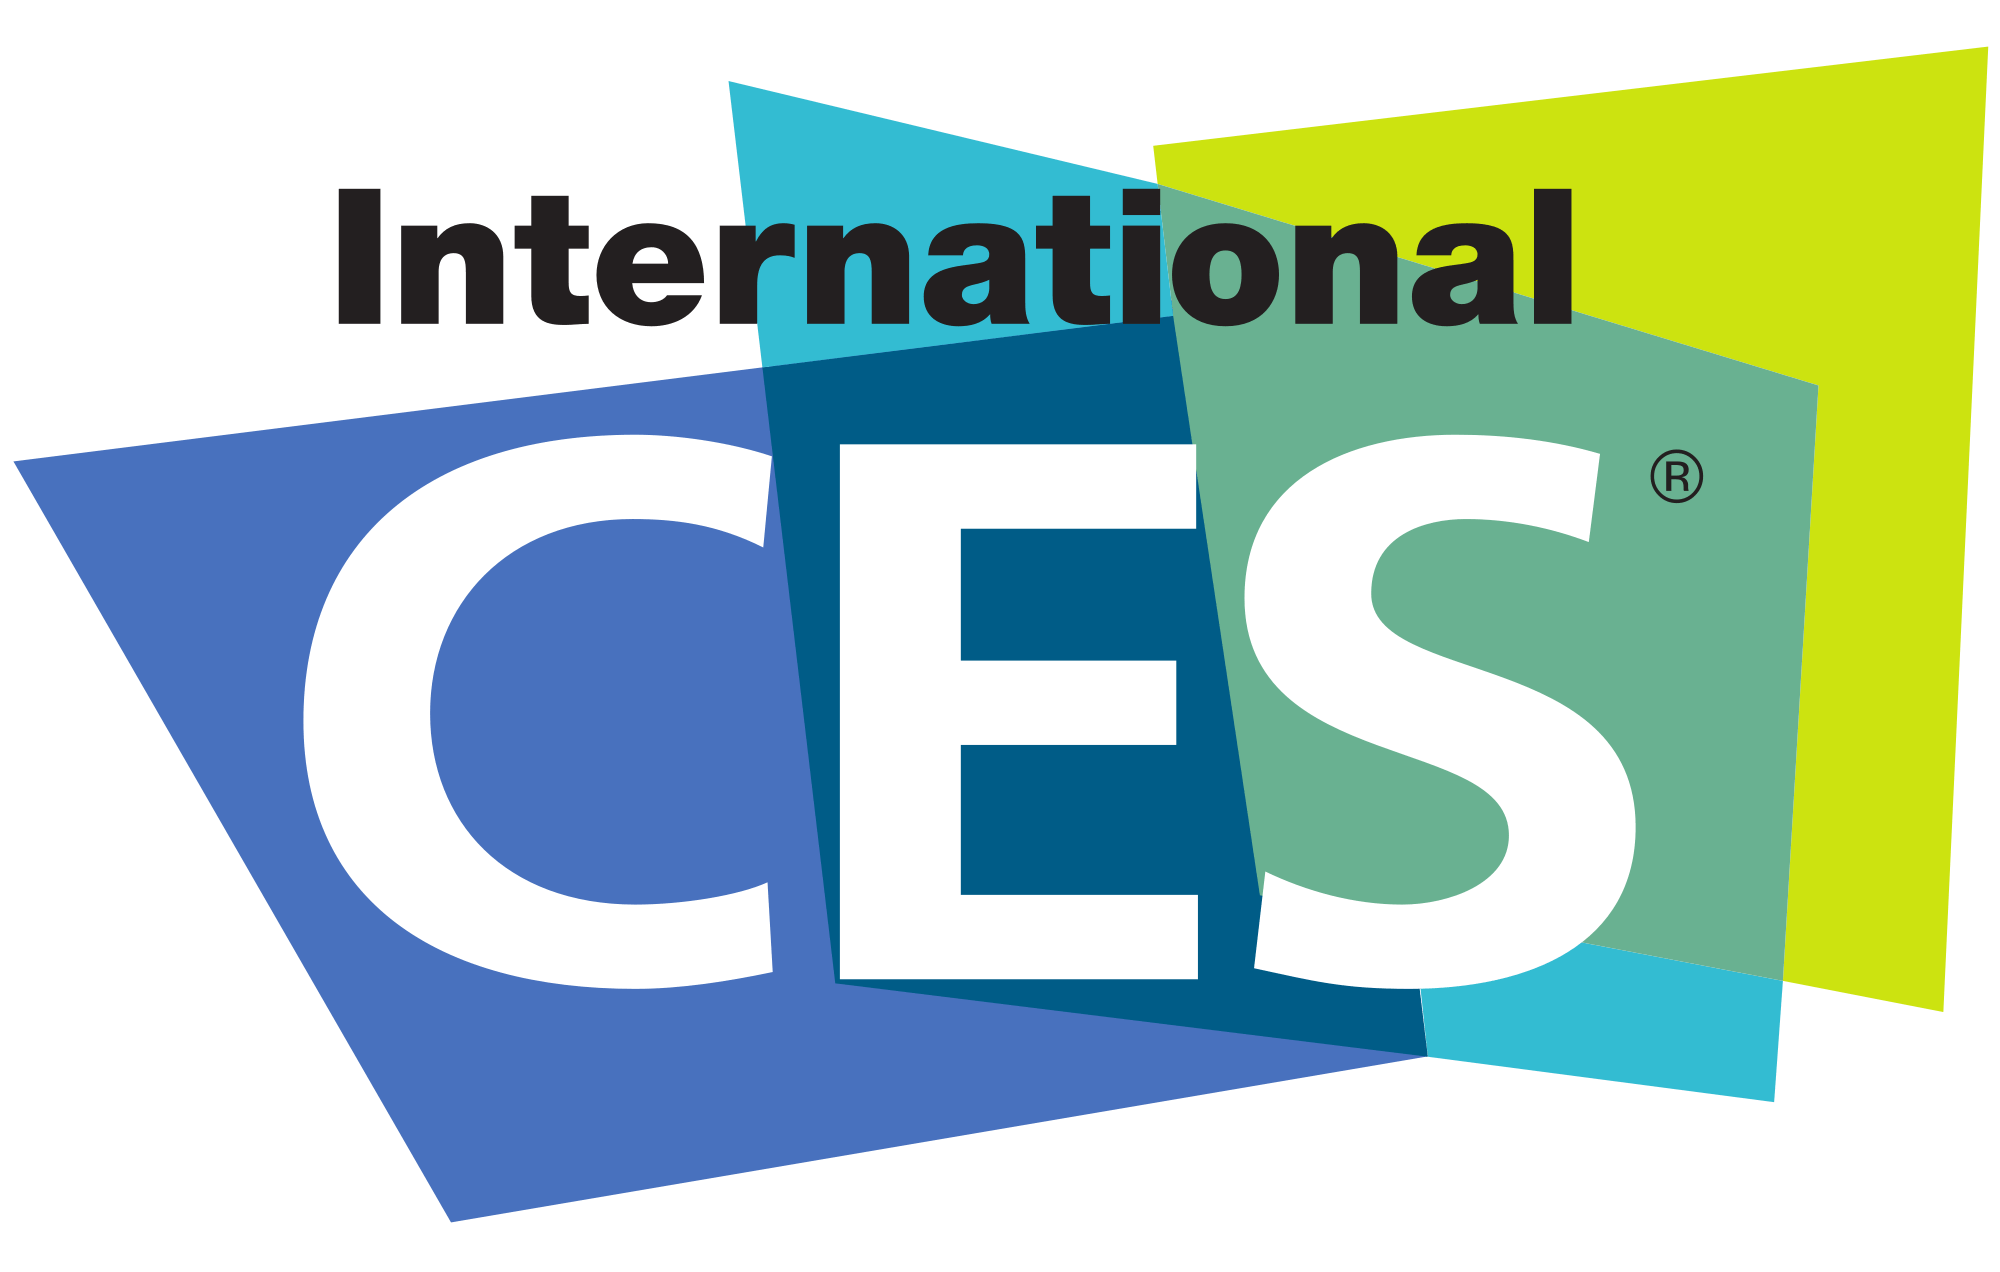 international ces logo - CES 2017